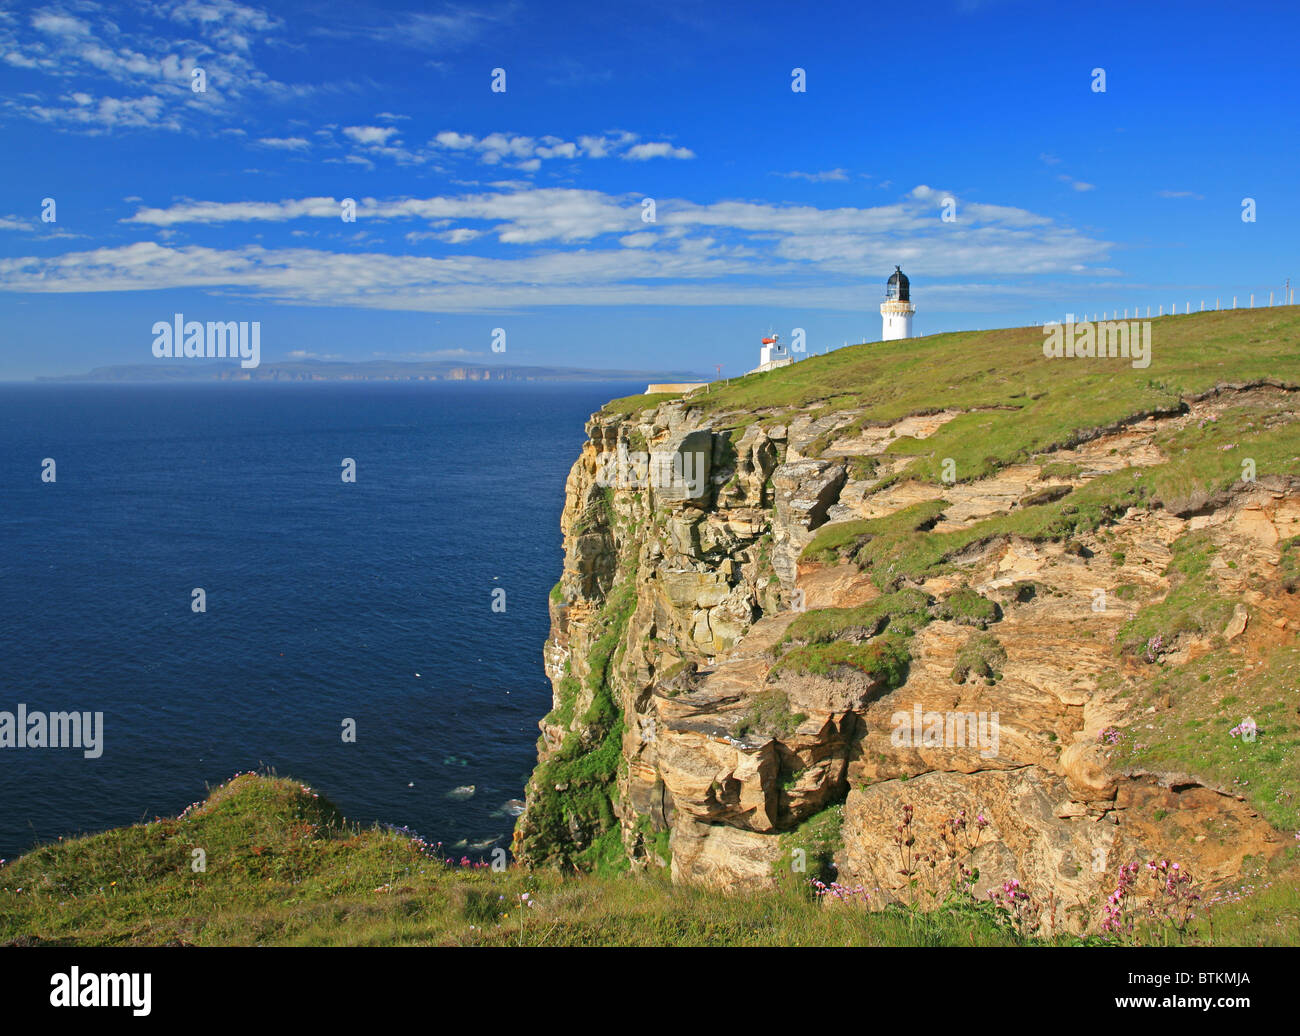 UK Scotland Caithness Dunnet Head and Lighthouse Looking over the Pentland Firth to Orkney and the island of Hoy - Stock Image